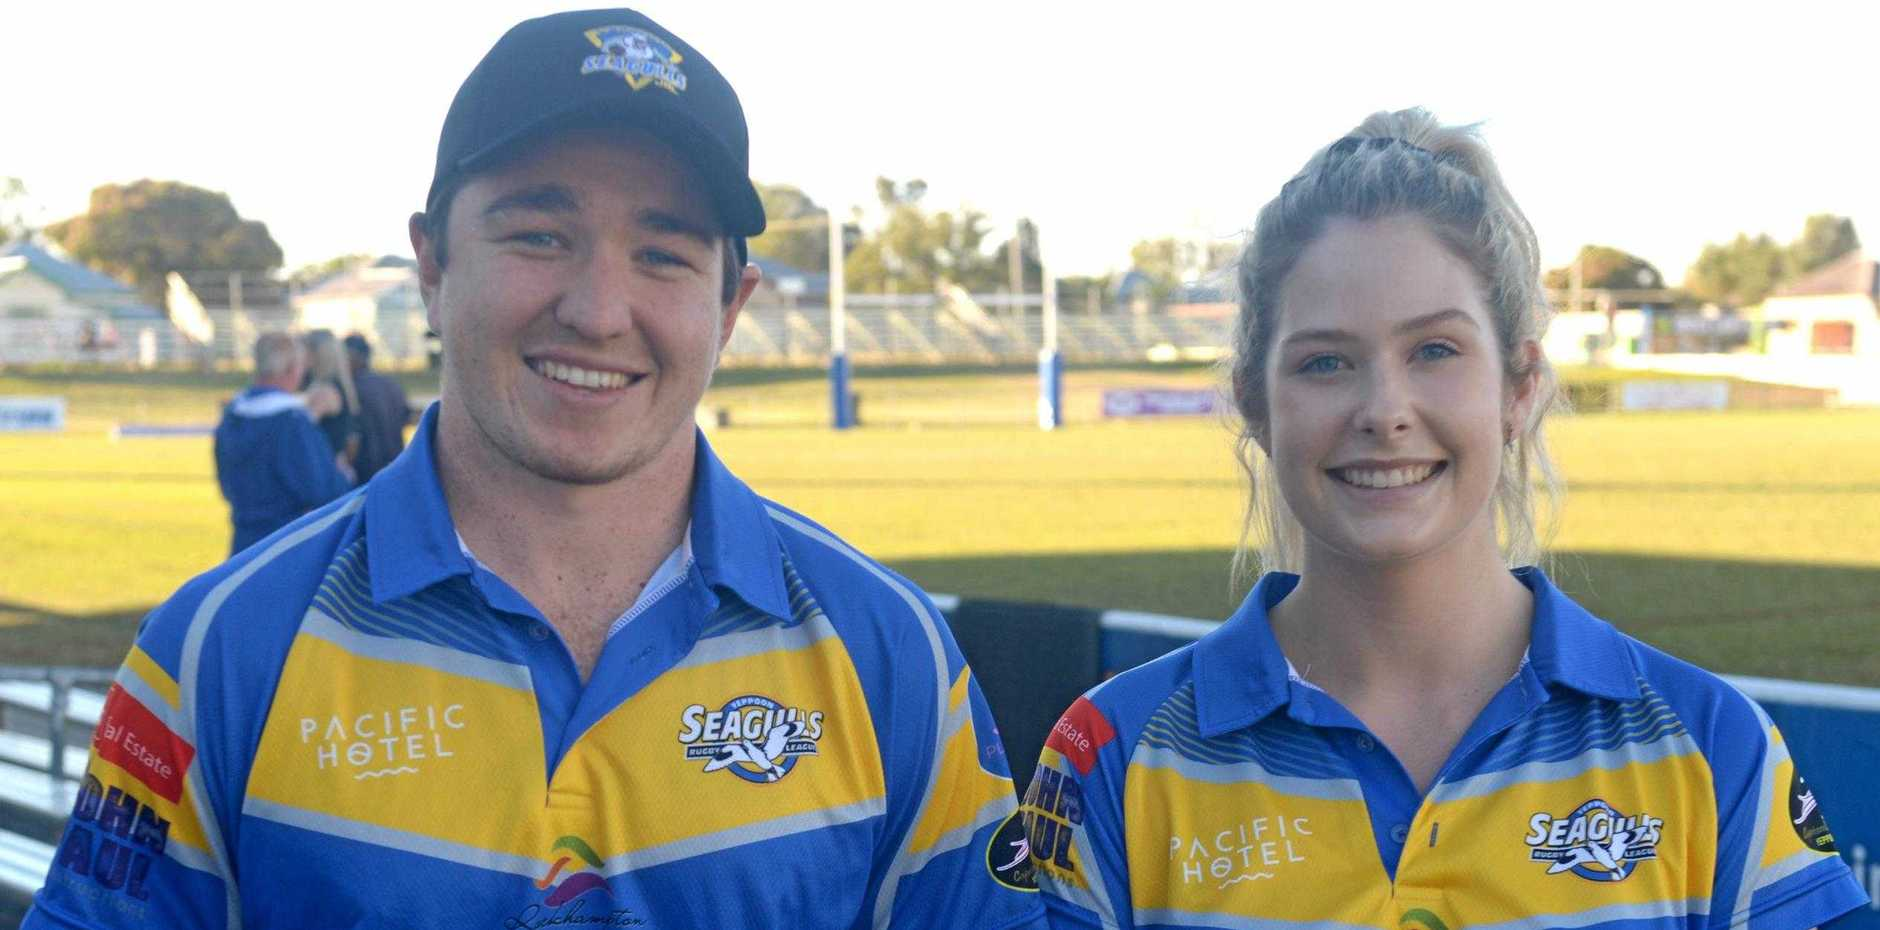 GAME ON! Cousins Sam Holzheimer and Meg Neven will captain the Yeppoon men's and women's teams in this weekend's rugby league grand finals at Browne Park.